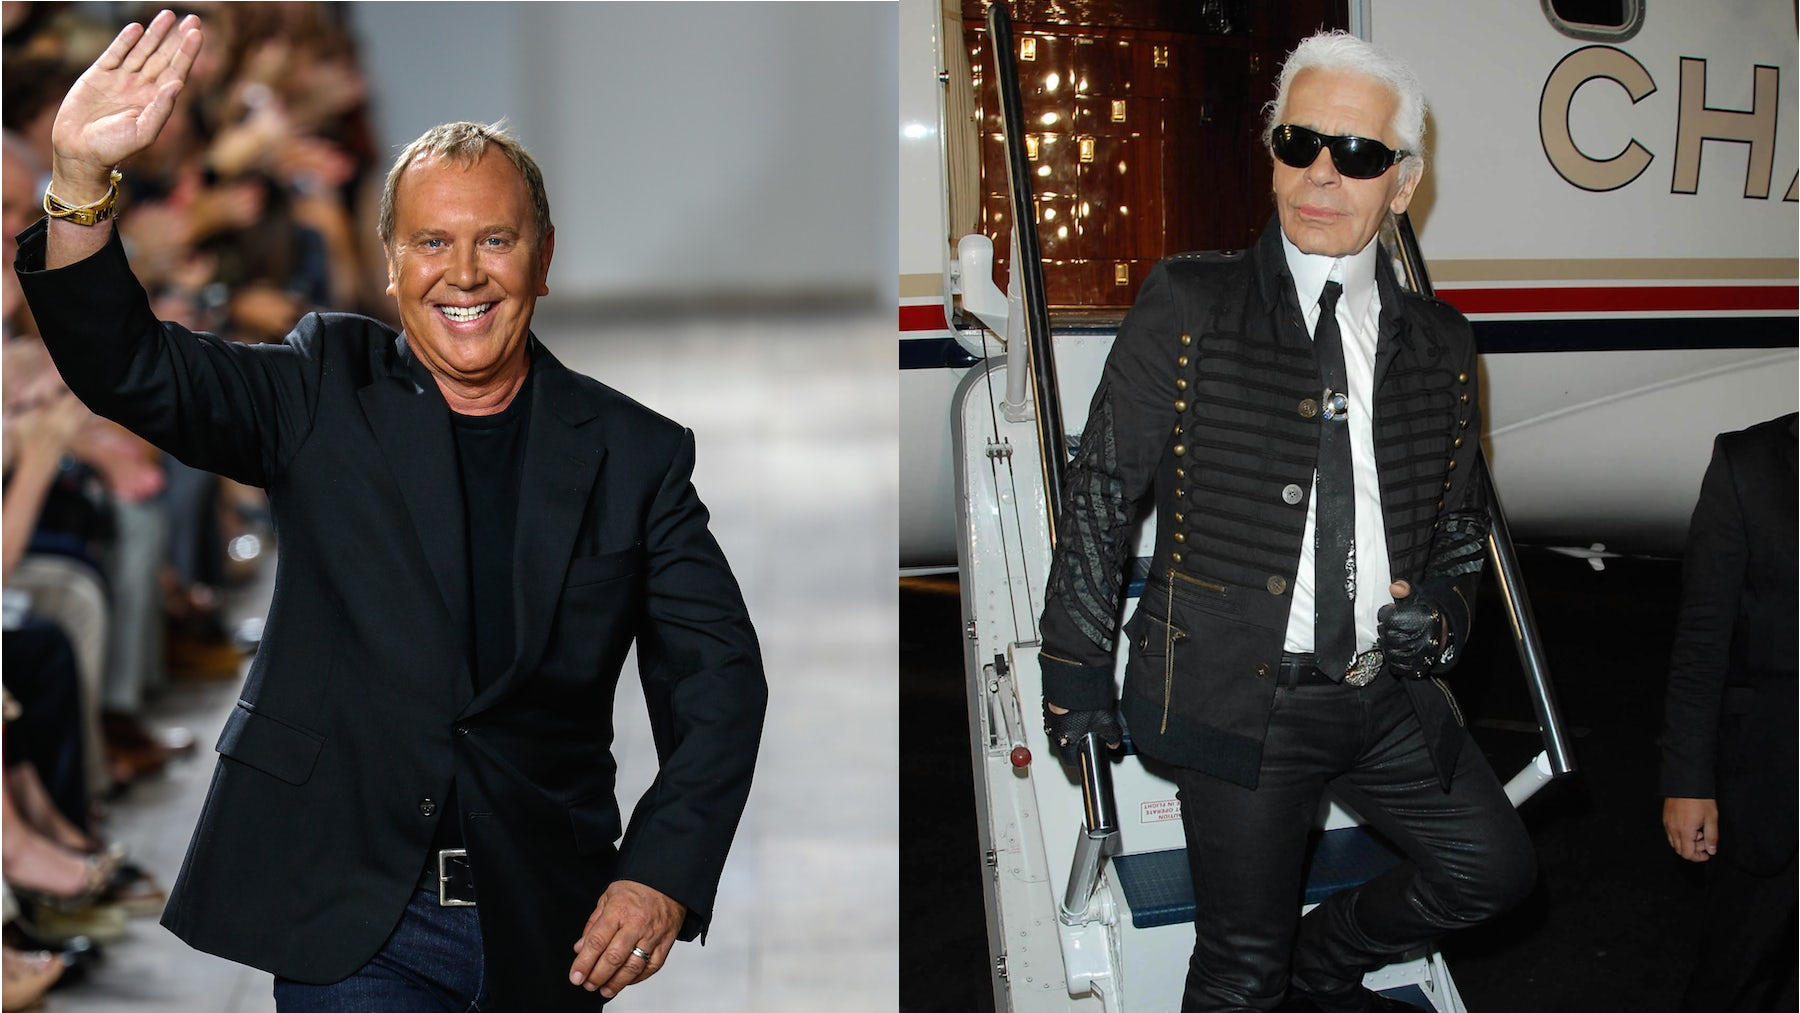 (R-L) Michael Kors and Karl Lagerfeld | Source: Shutterstock